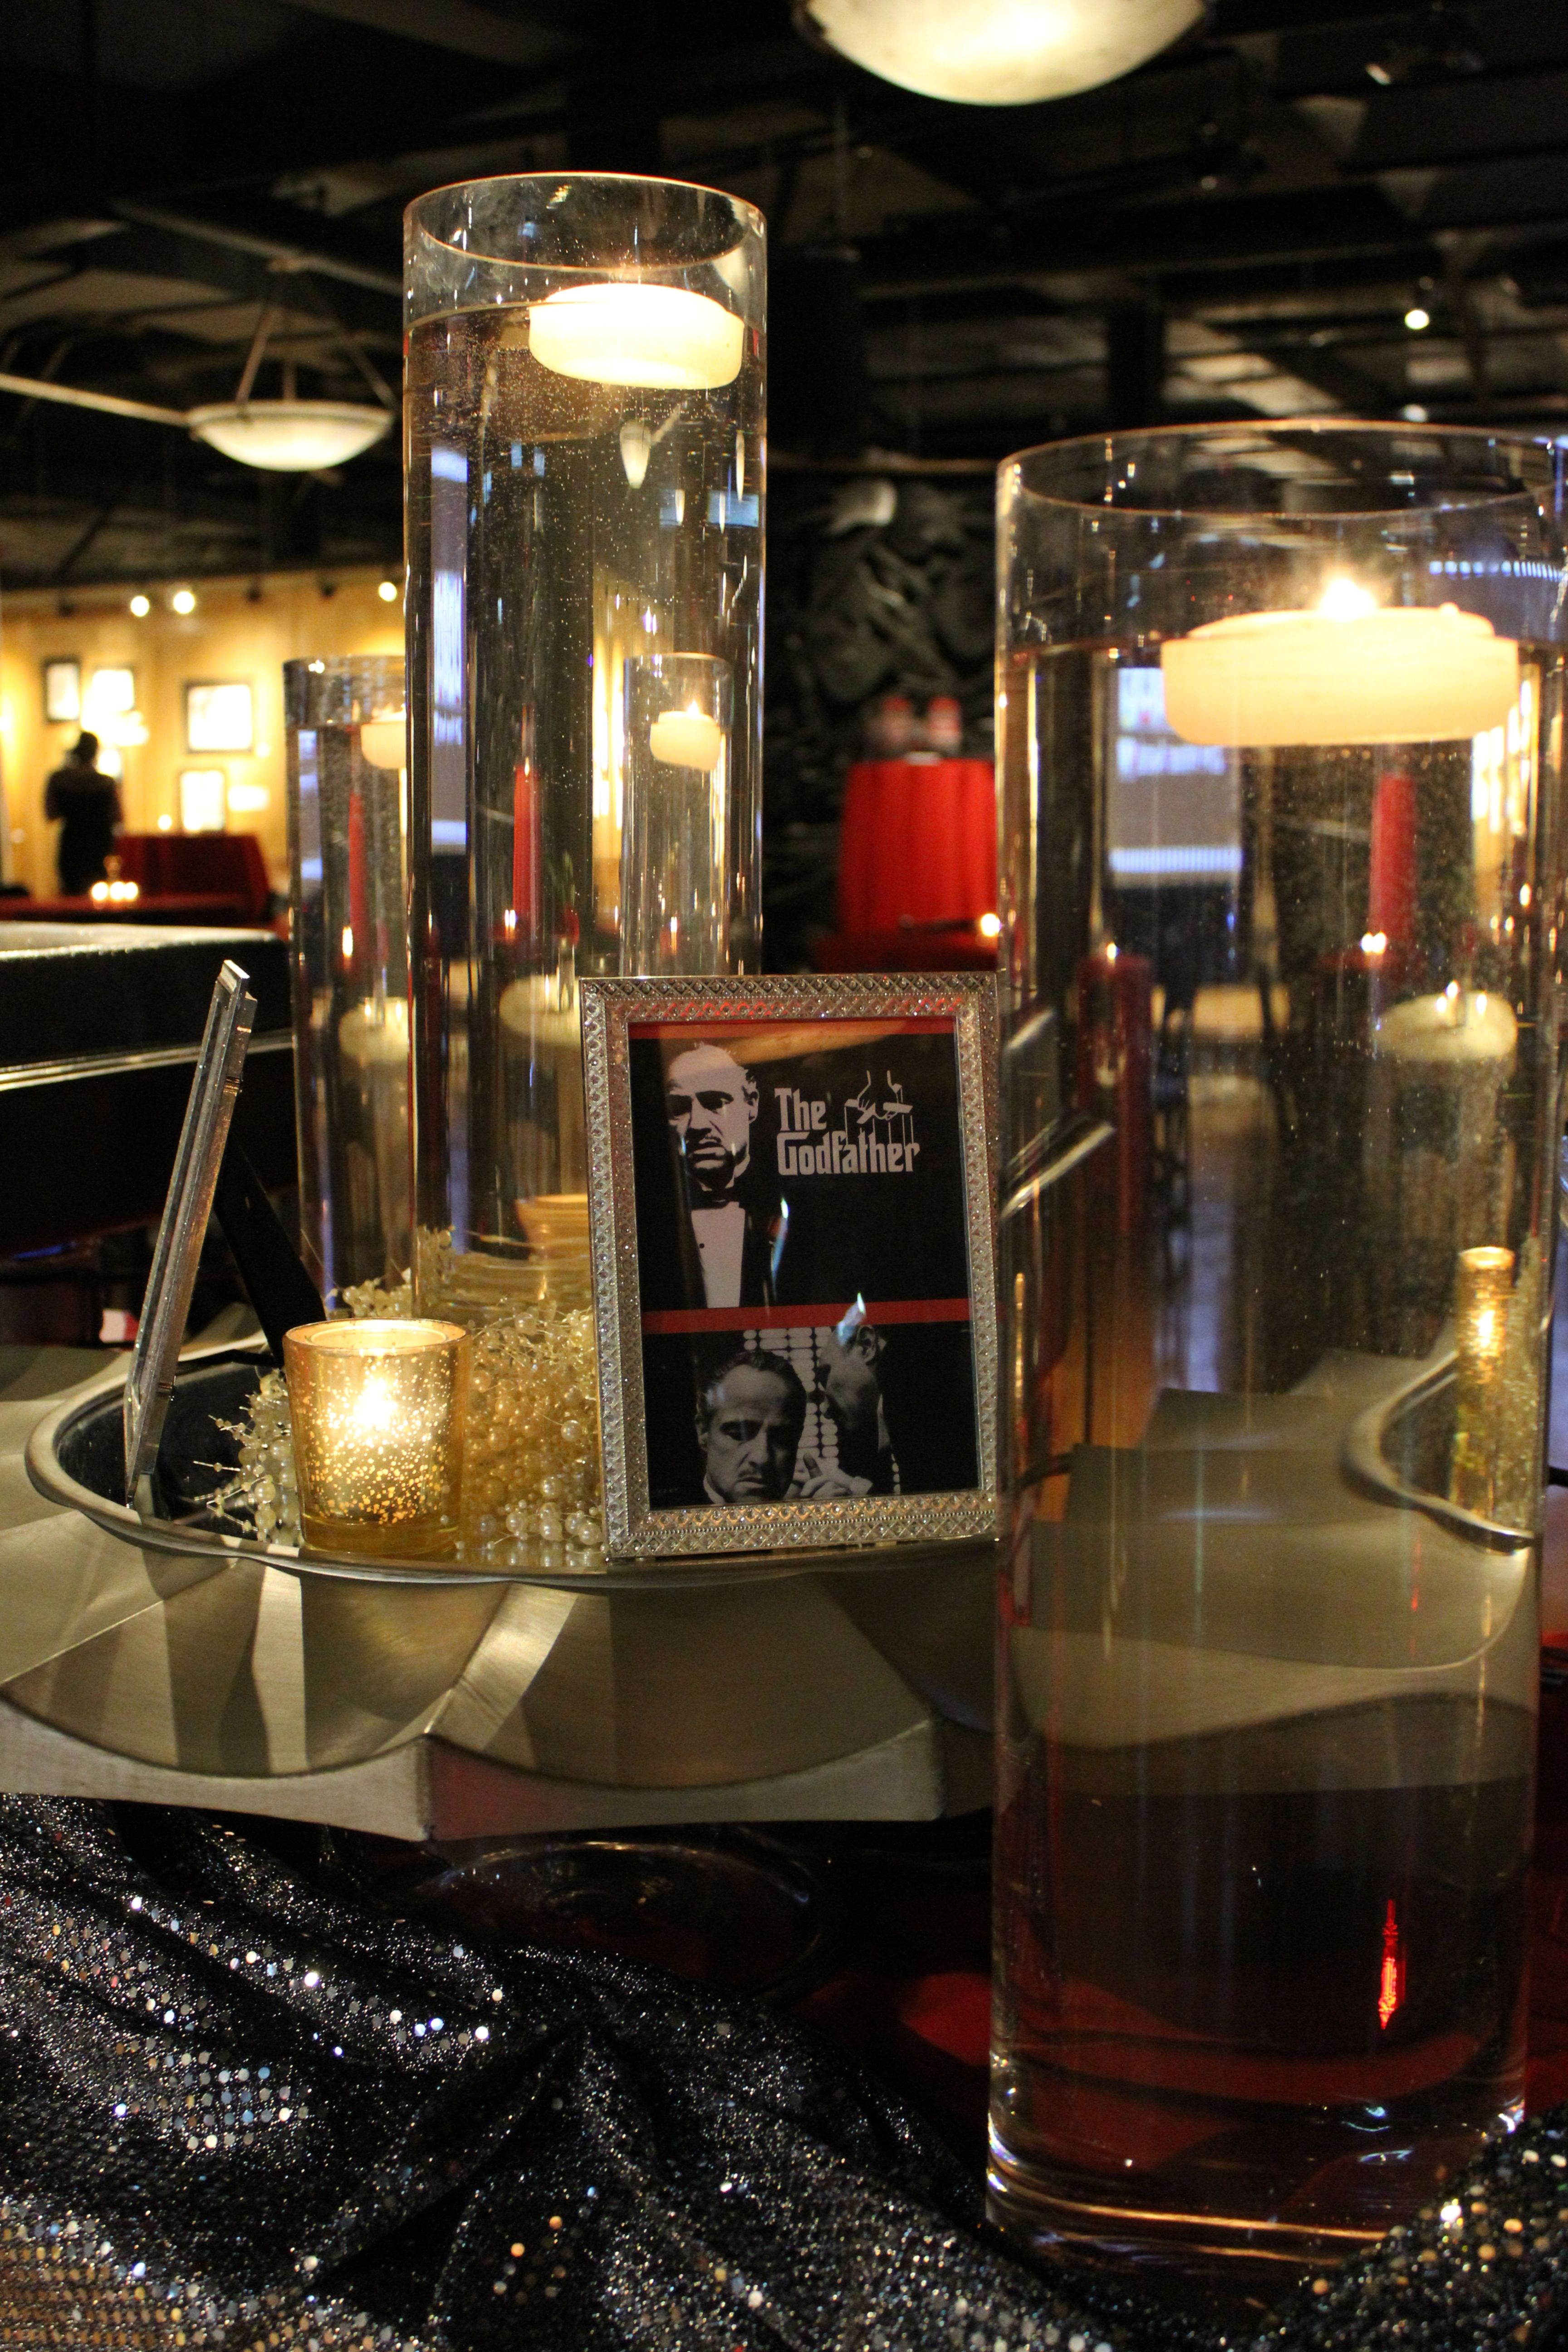 Movie Themed Food Stations  The Godfather  Tortellini &